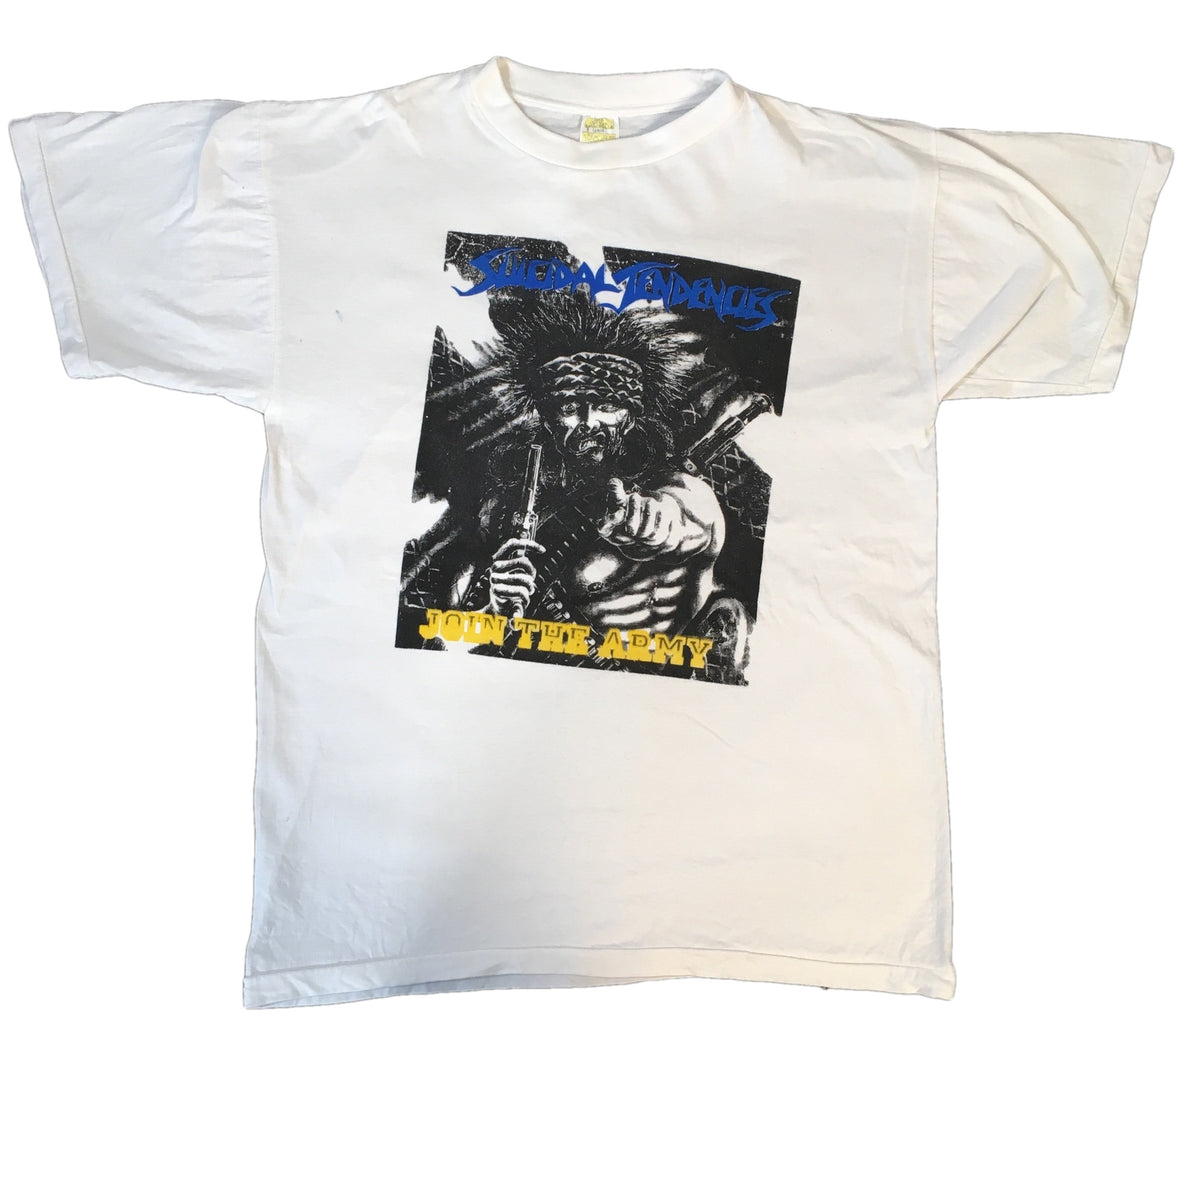 "Vintage Suicidal Tendencies ""Join The Army"" T-Shirt"